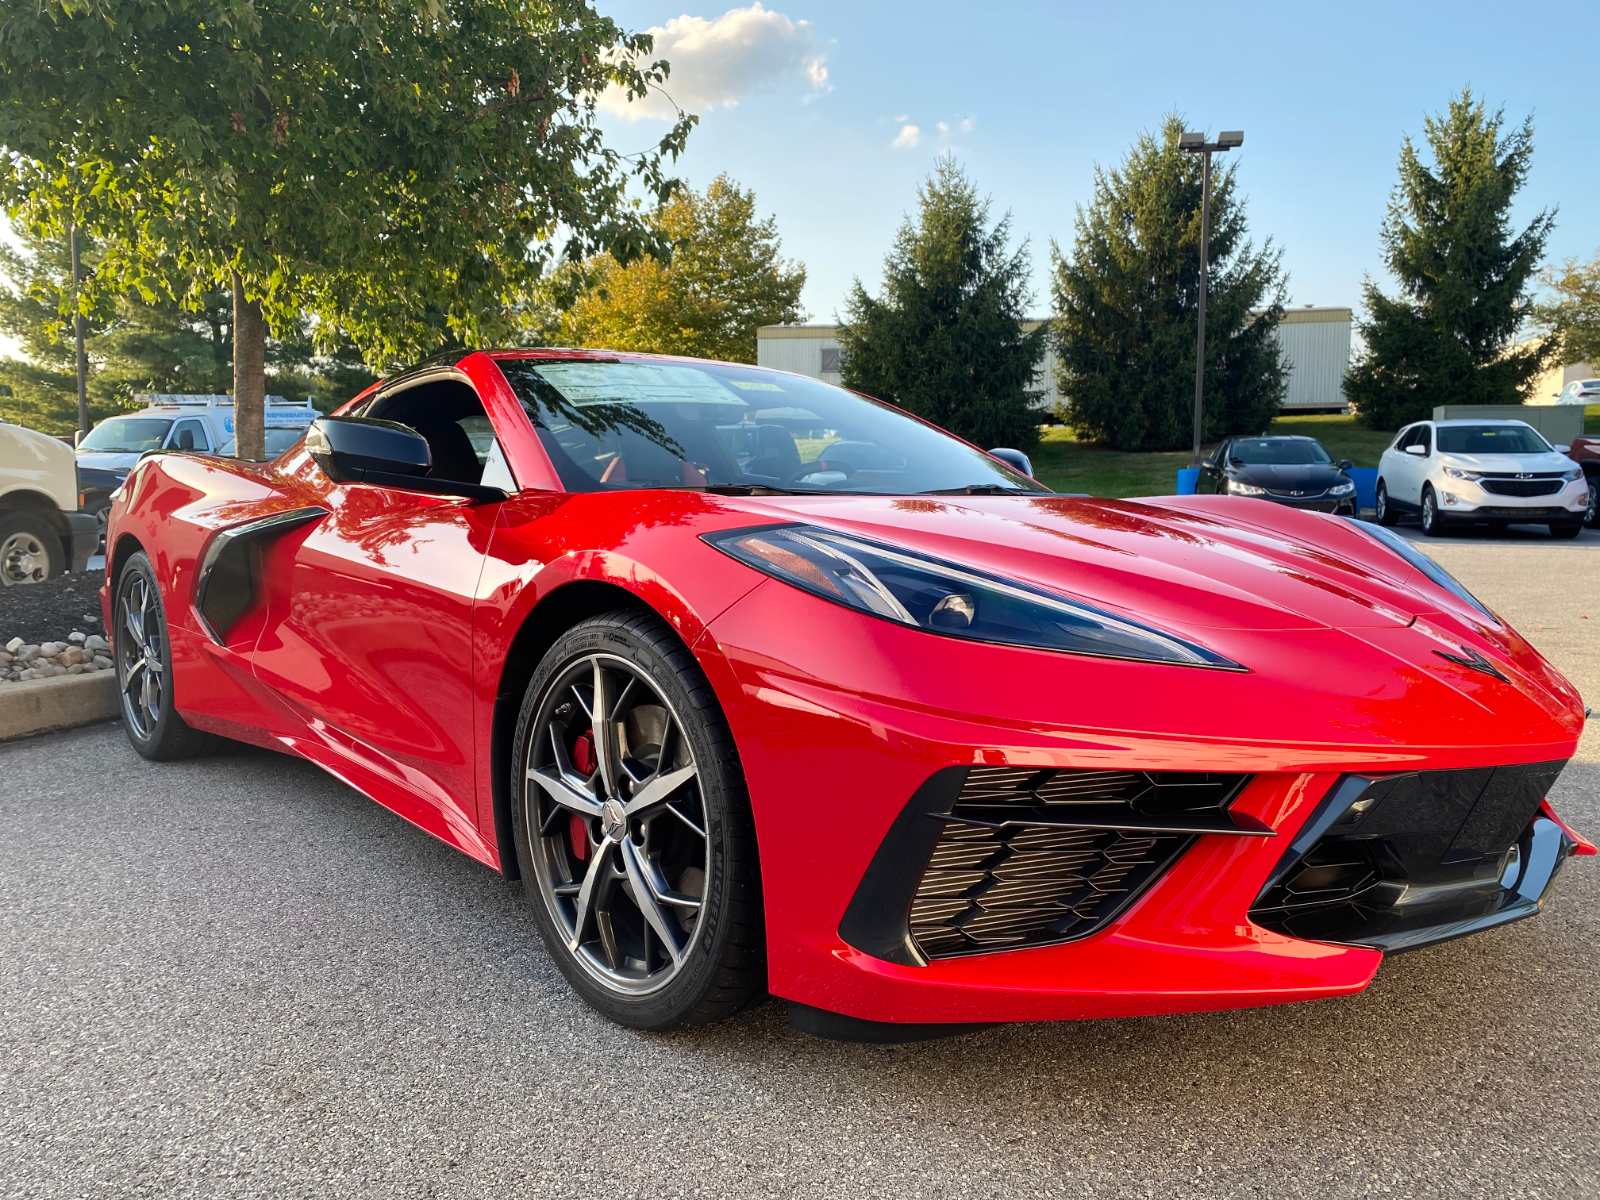 2020 C8 Chevrolet Corvette Stingray Coupe 3LT in Torch Red